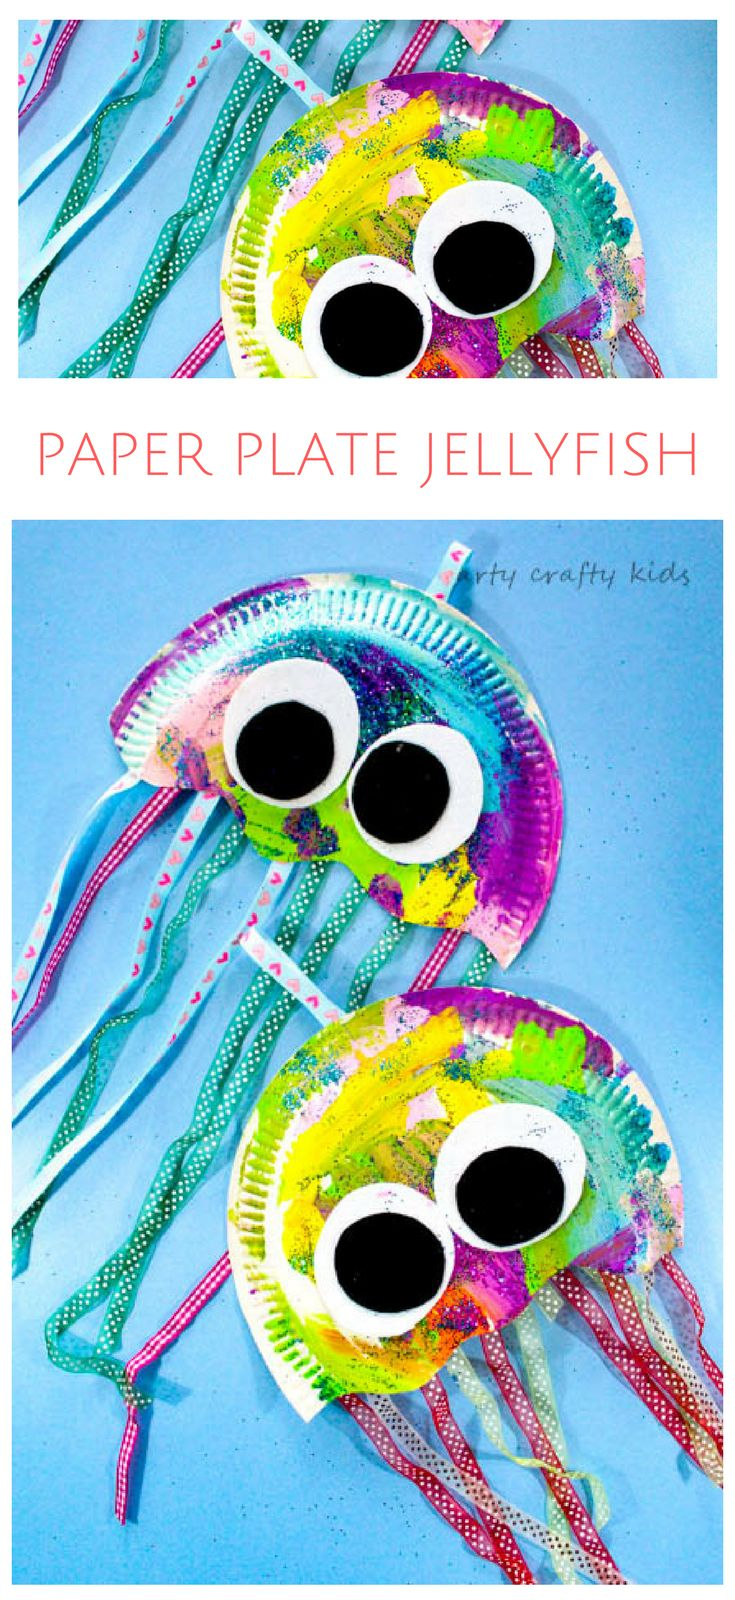 Beach Craft Ideas For Kids Part - 17: Arty Crafty Kids | Craft | Paper Plate Jellyfish Craft | Easy Jellyfish  Craft For Kids